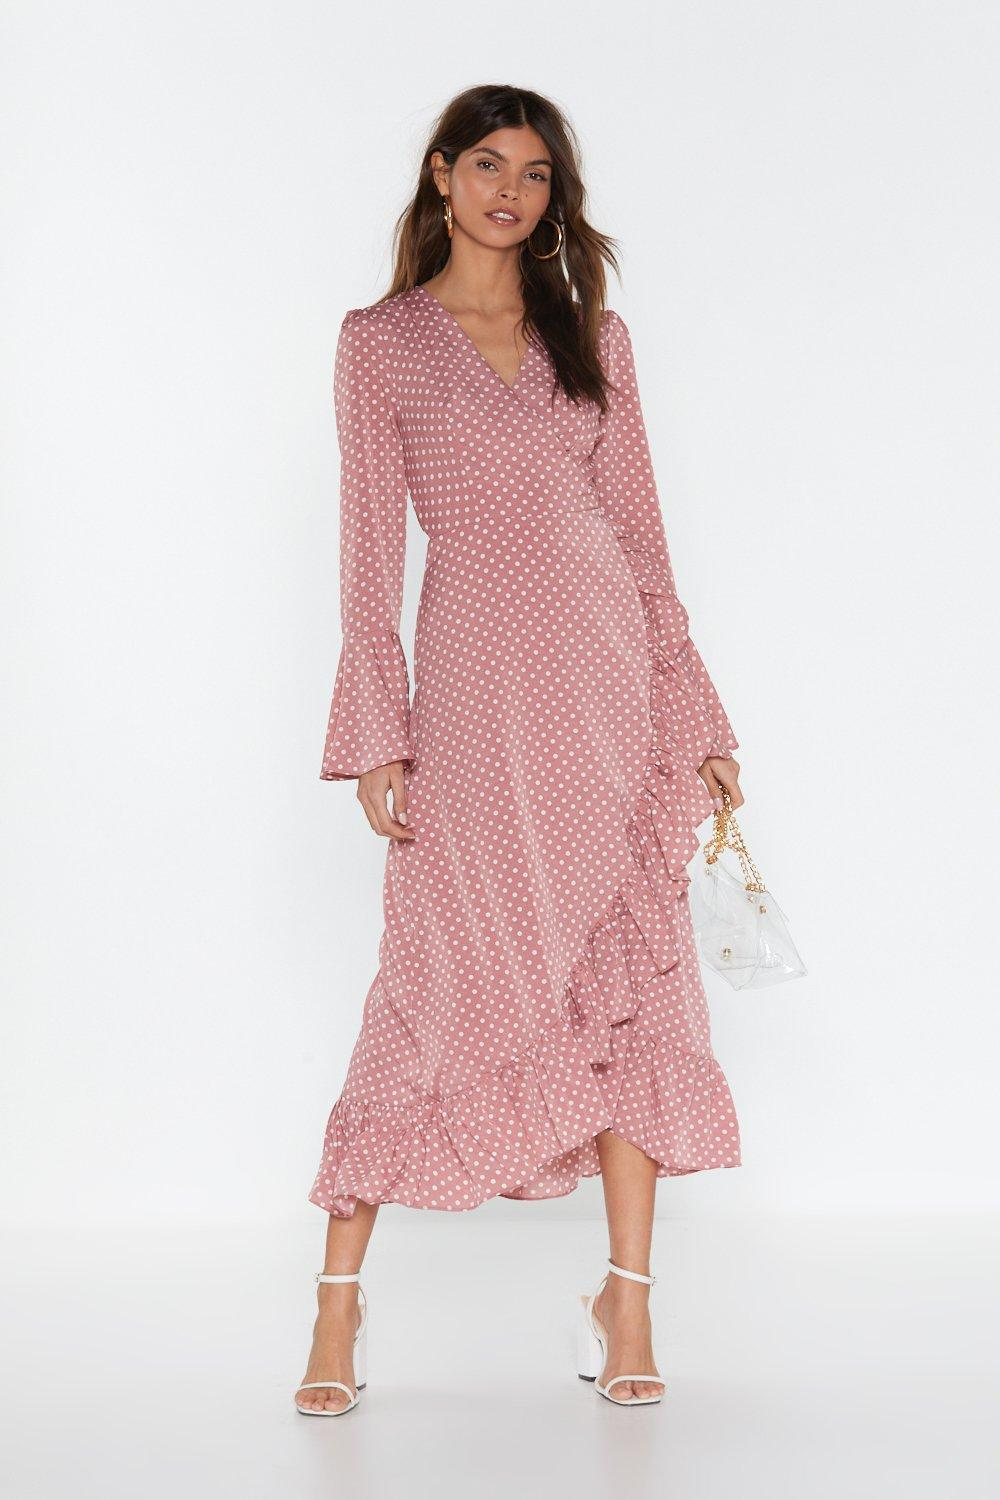 Dot to Have Your Love Polka Dot Midi Dress